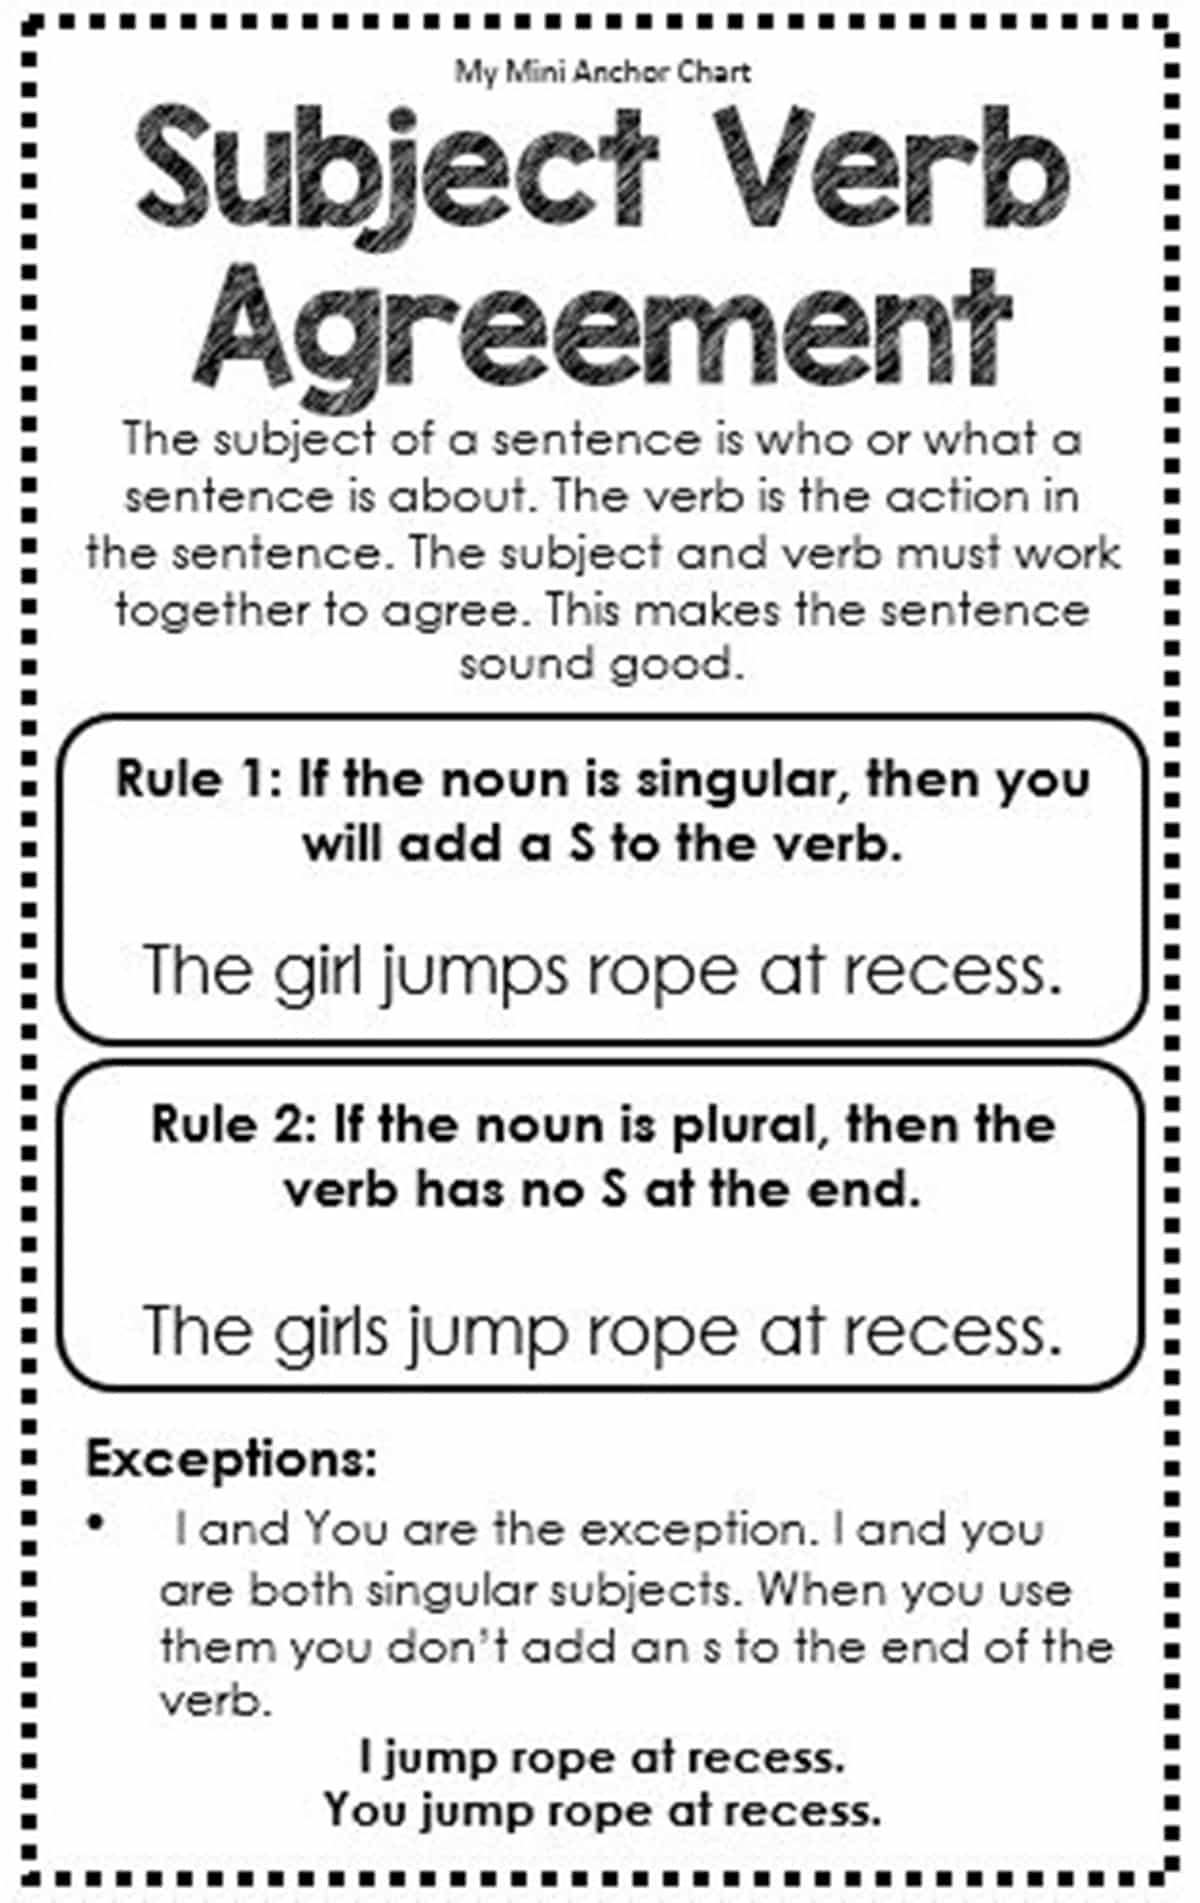 Worksheet subject and verb agreement worksheets grass fedjp collective noun subject verb agreement worksheets compromise exercises hard and with nouns grammar verbs worksheet platinumwayz